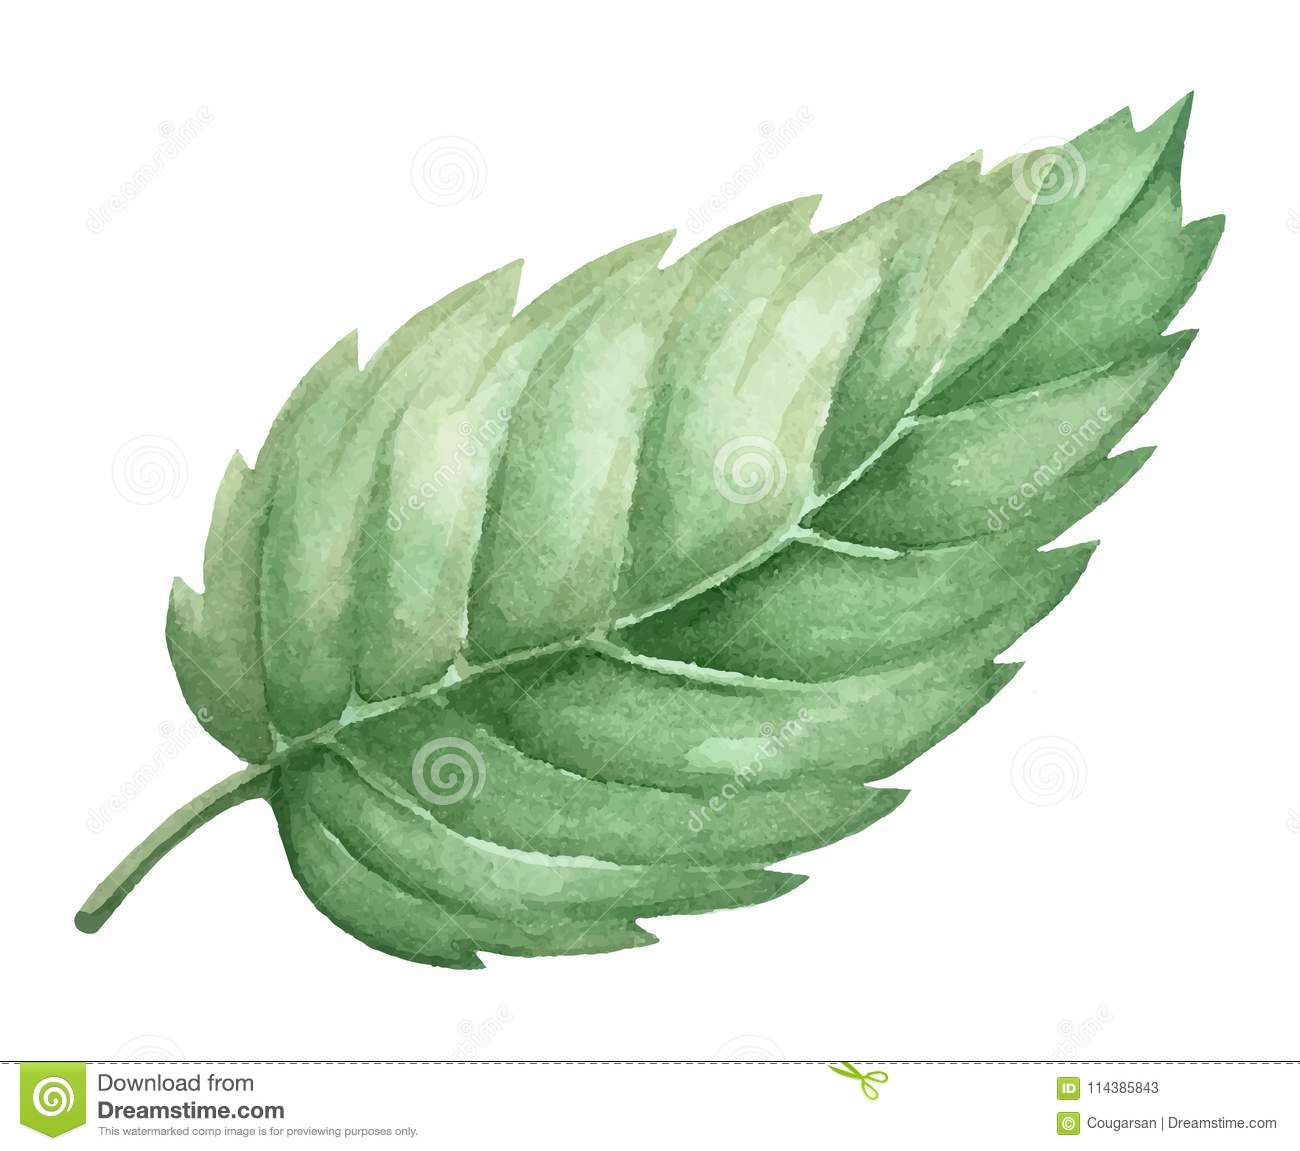 Isolated watercolor green plant leaf deocration